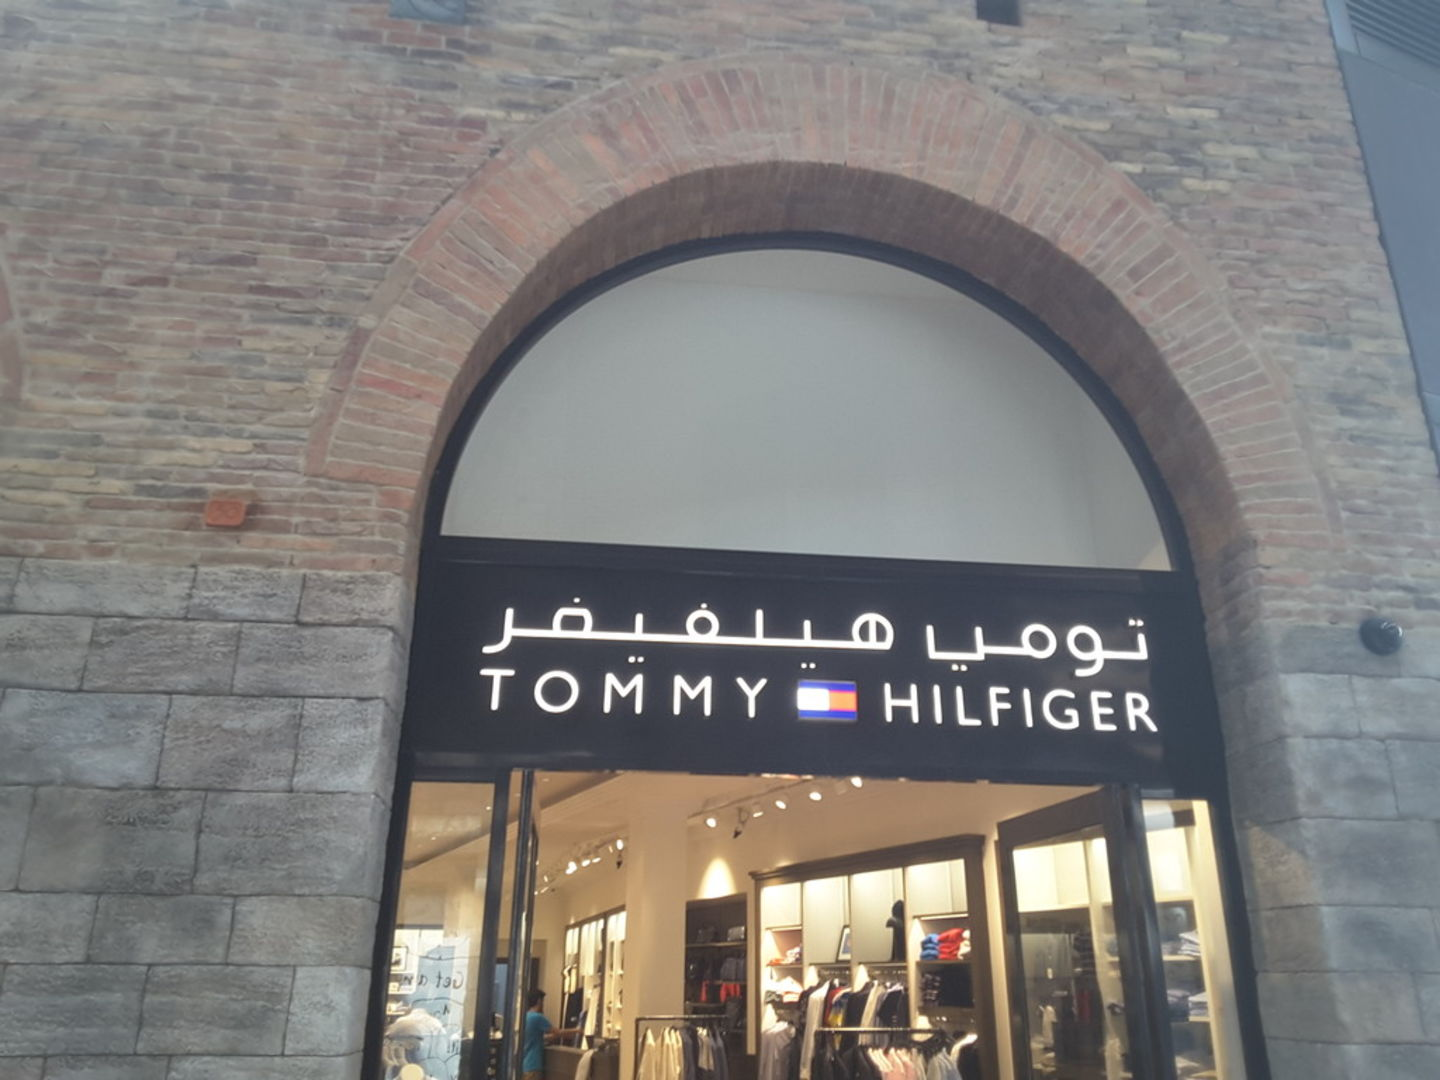 HiDubai-business-tommy-hilfiger-shopping-apparel-saih-shuaib-1-dubai-2